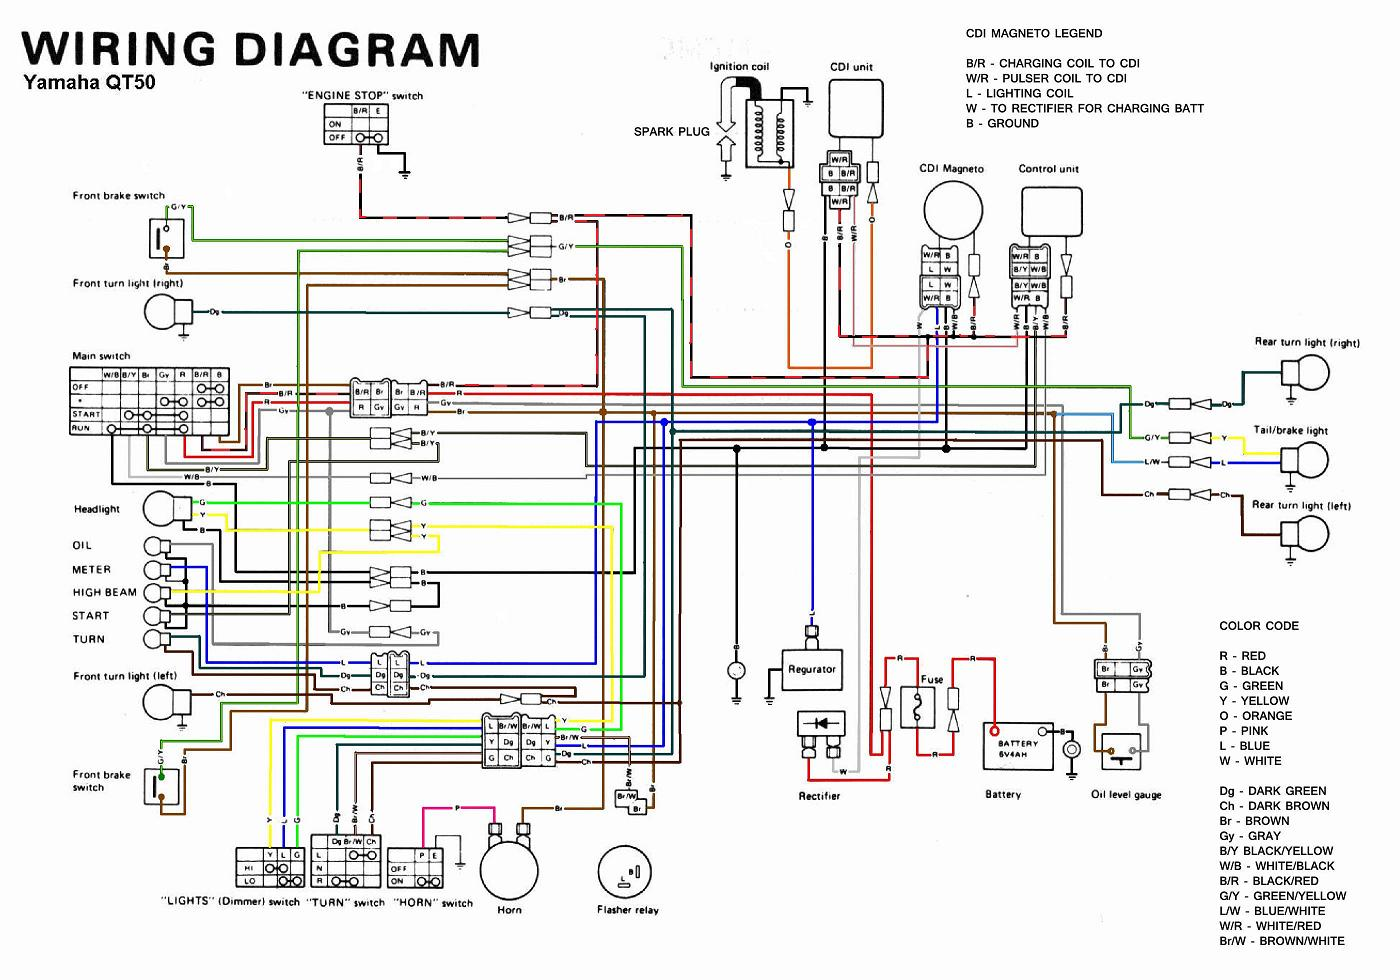 Yamaha Wiring Schematic | Wiring Diagram on triton trailer wiring diagram, kawasaki atv wiring diagram, kawasaki 4 wheeler wiring diagram, kawasaki 250 parts diagram, kawasaki ignition system wiring diagram, kawasaki 100 wiring diagram, klr 650 wiring diagram, kawasaki kz1000 wiring-diagram, kawasaki mojave 250, kawasaki motorcycle wiring diagrams, ezgo wiring diagram, kawasaki bayou 185 wiring-diagram, kawasaki mule wiring-diagram, kawasaki 500 wiring diagram, suzuki marauder wiring diagram, kawasaki 750 wiring diagram, kawasaki bayou 300 wiring diagram, kawasaki 400 wiring diagram, kawasaki bayou 220 wiring diagram, kawasaki engine wiring diagrams,